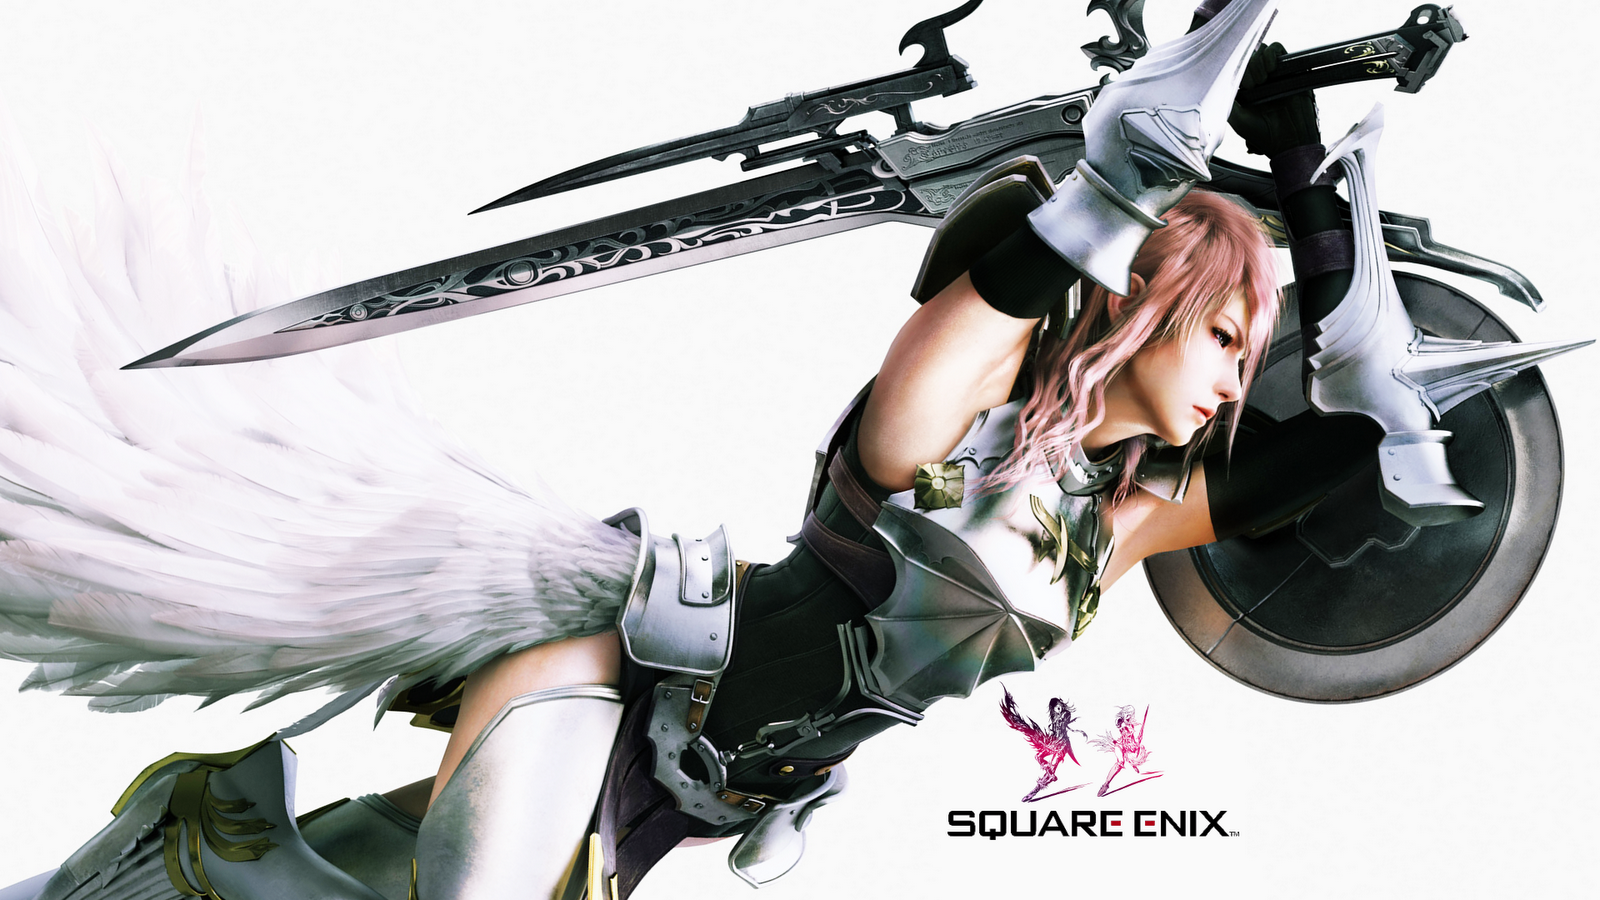 final fantasy fangirl wallpapers - Final Fantasy Fangirl Wallpaper HD Wallpaper Expert